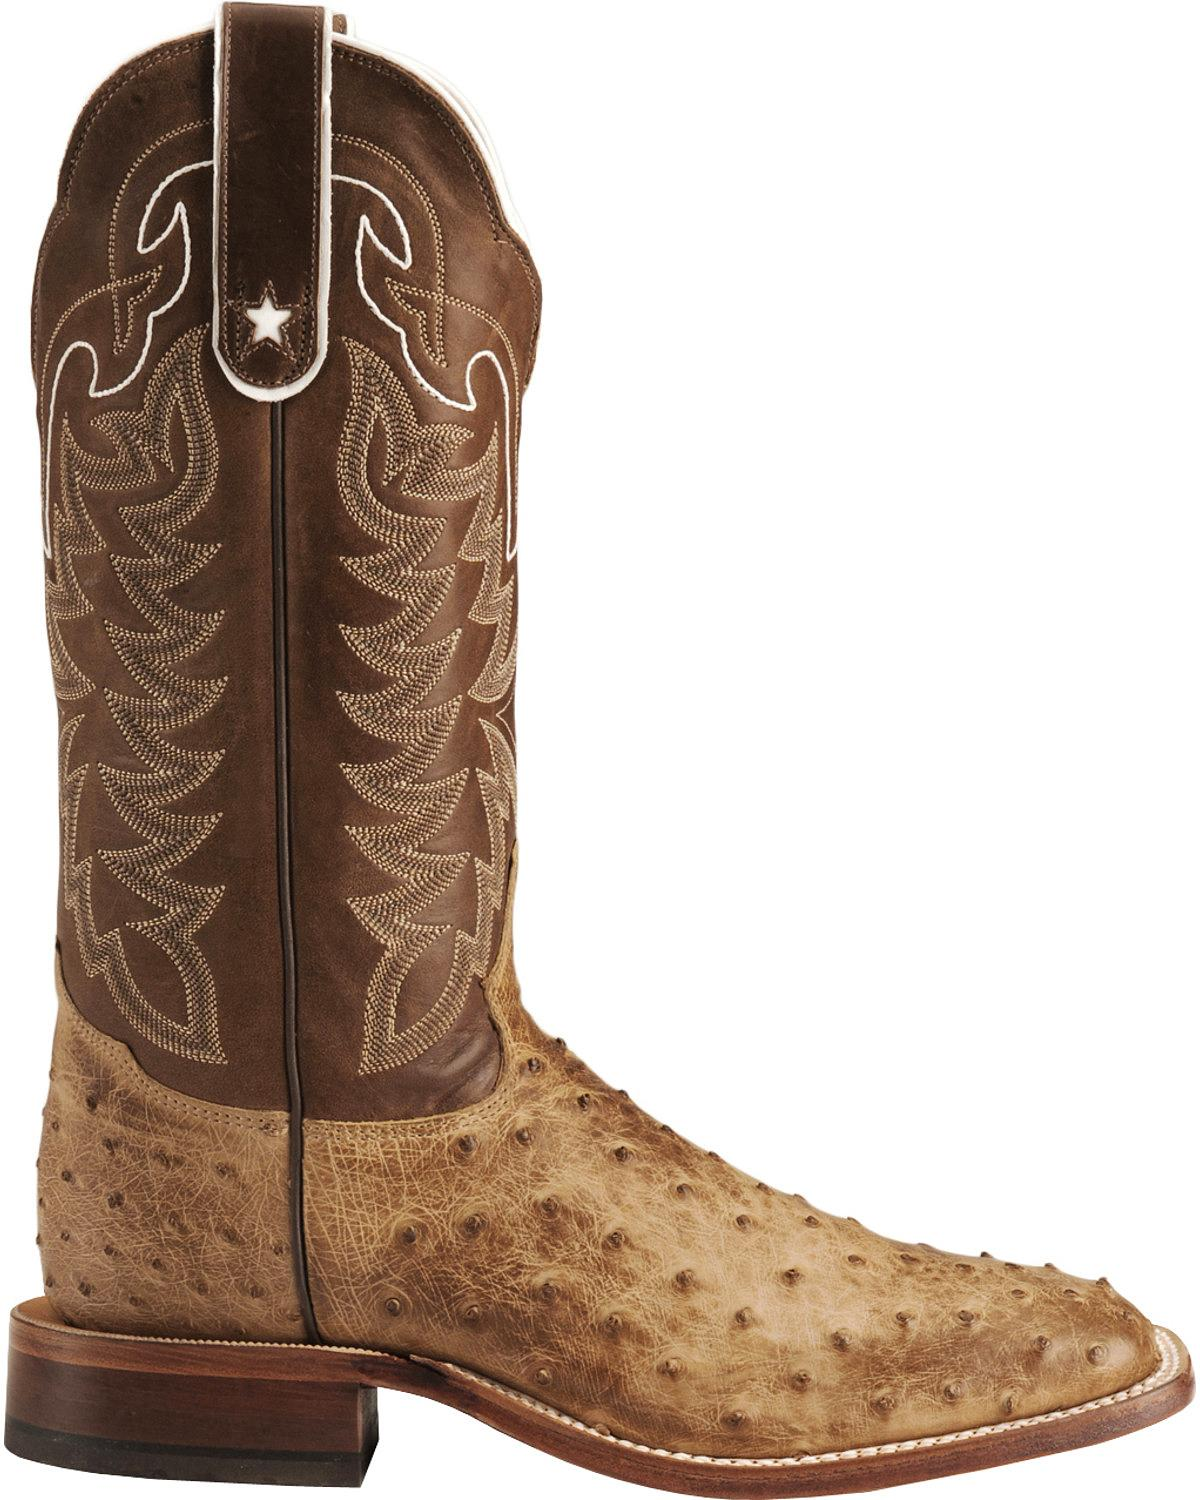 Boot Barn is a privately held clothing company that sells boots, shoes, shirts, jeans, jackets, skirts, handbags, watches and gift items for men, women, and children.